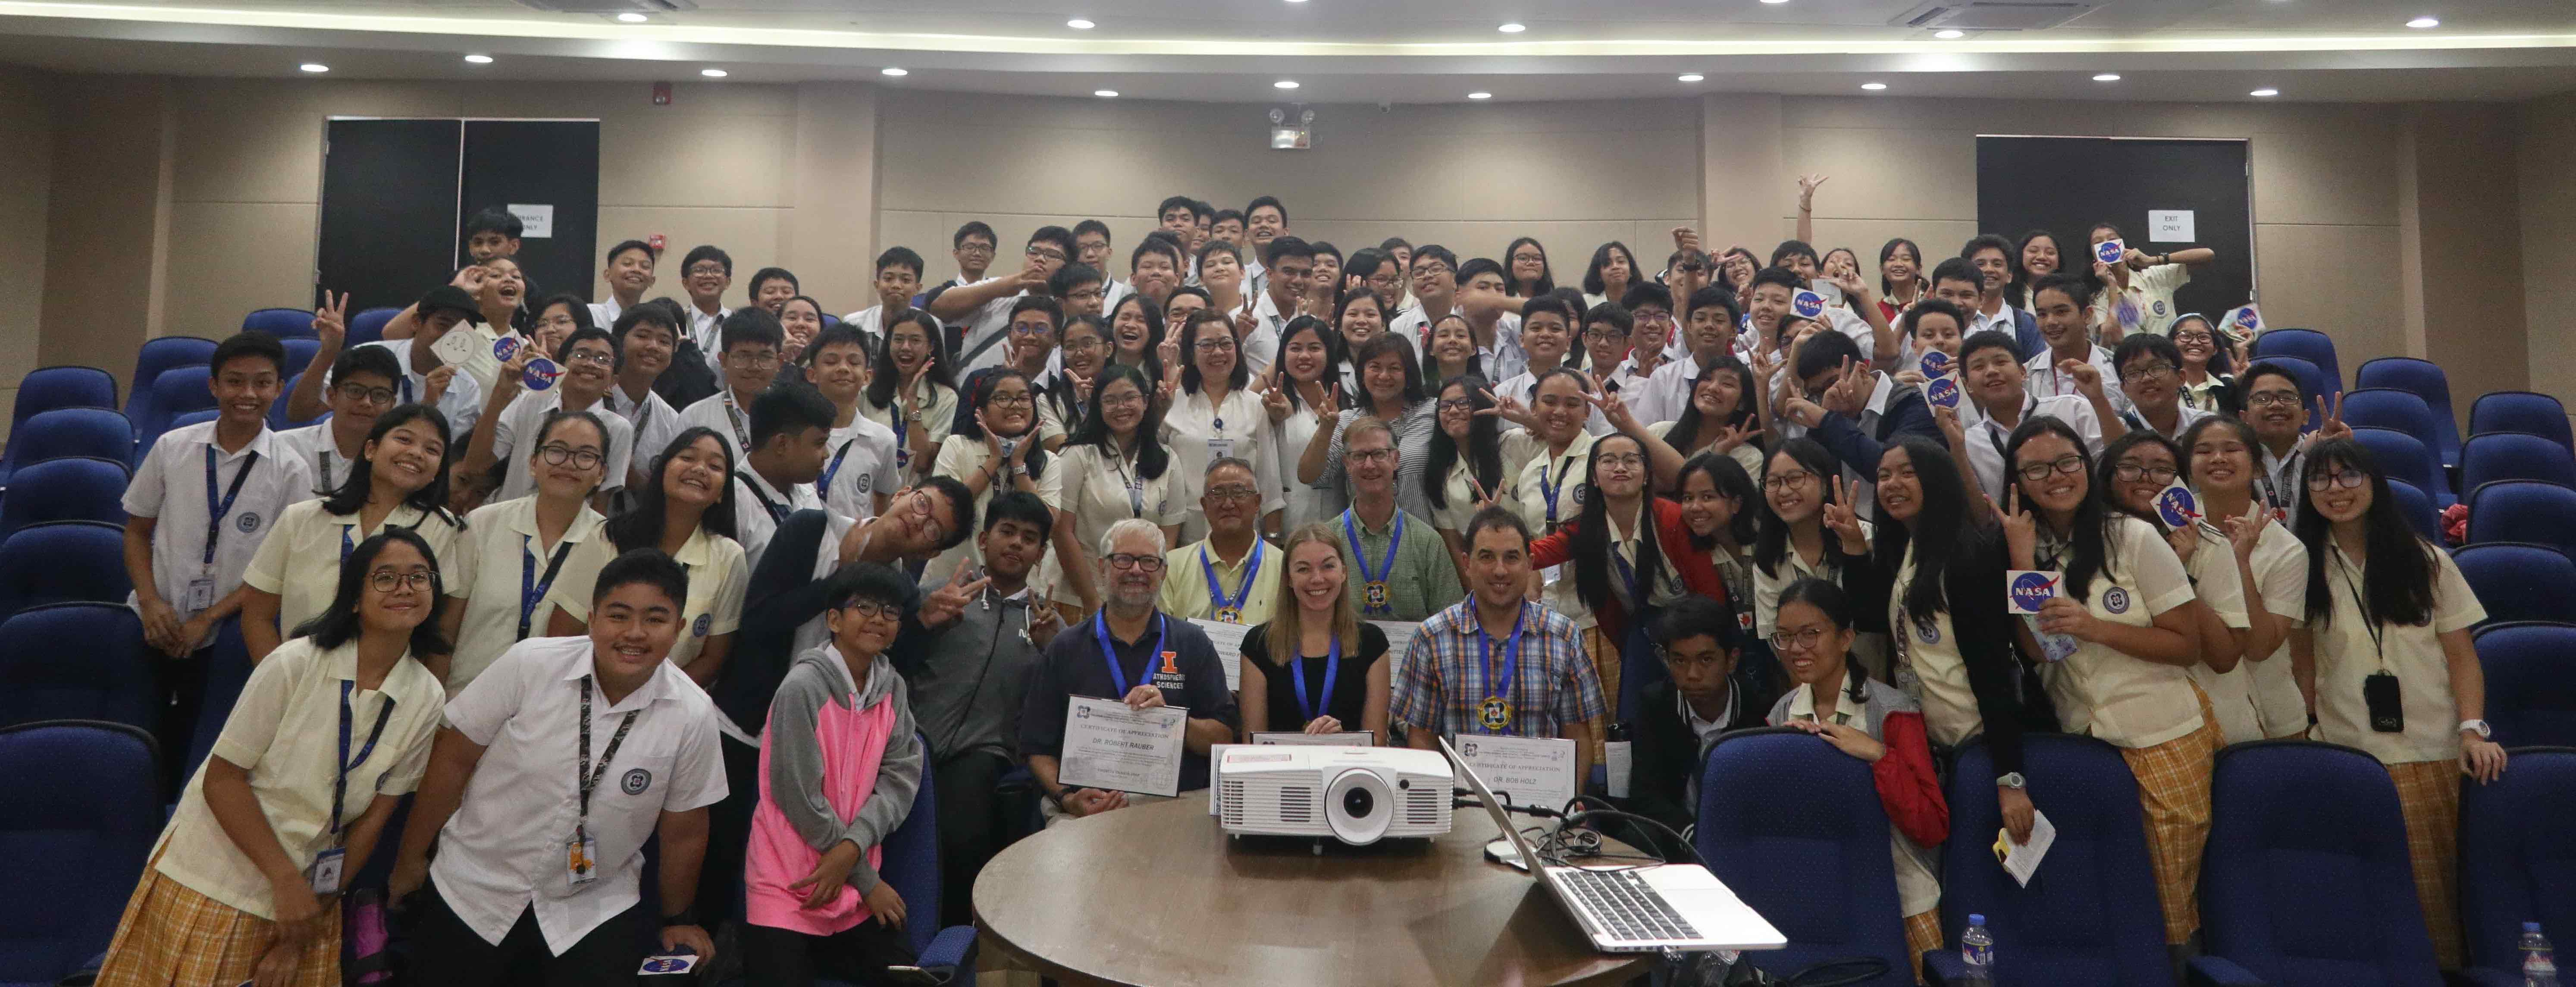 8th grade students from the Philippine Science High School Central Luzon Campus pose with the CAMP2Ex team (center) after a presentation about NASA Earth Science and CAMP2Ex at their school on 09 September 2019.